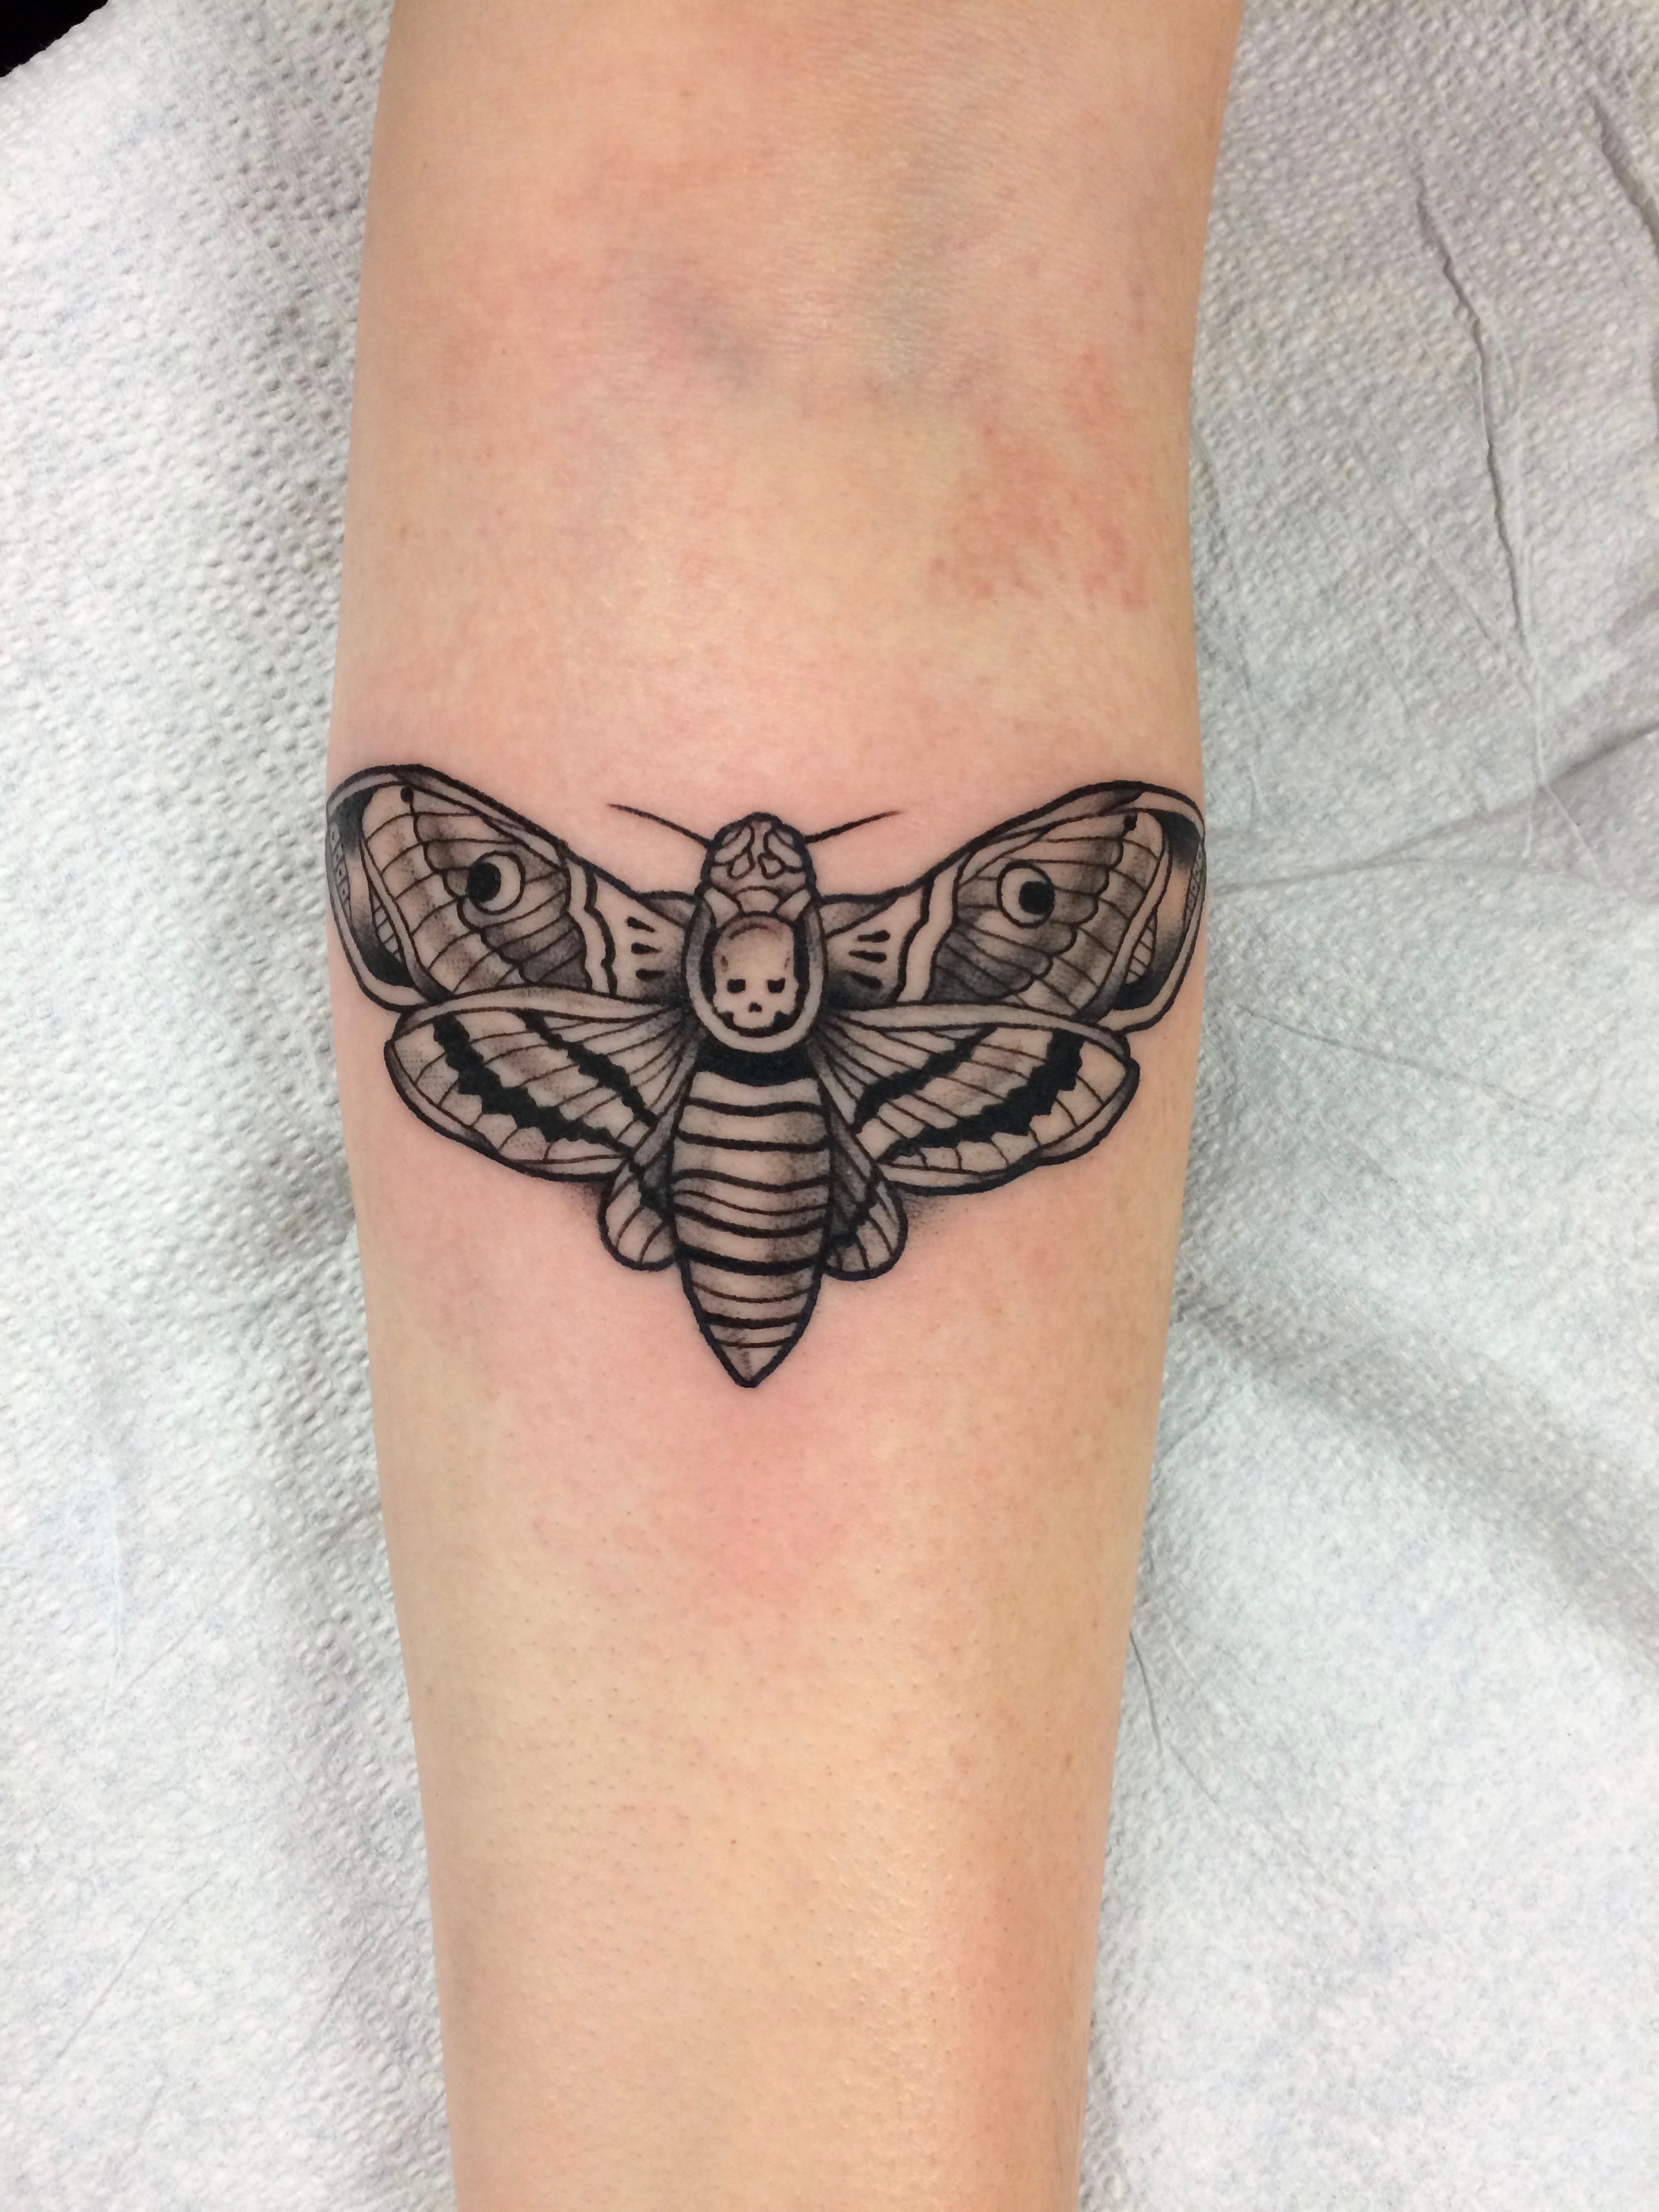 Blackwork bee tattoo by Alveno